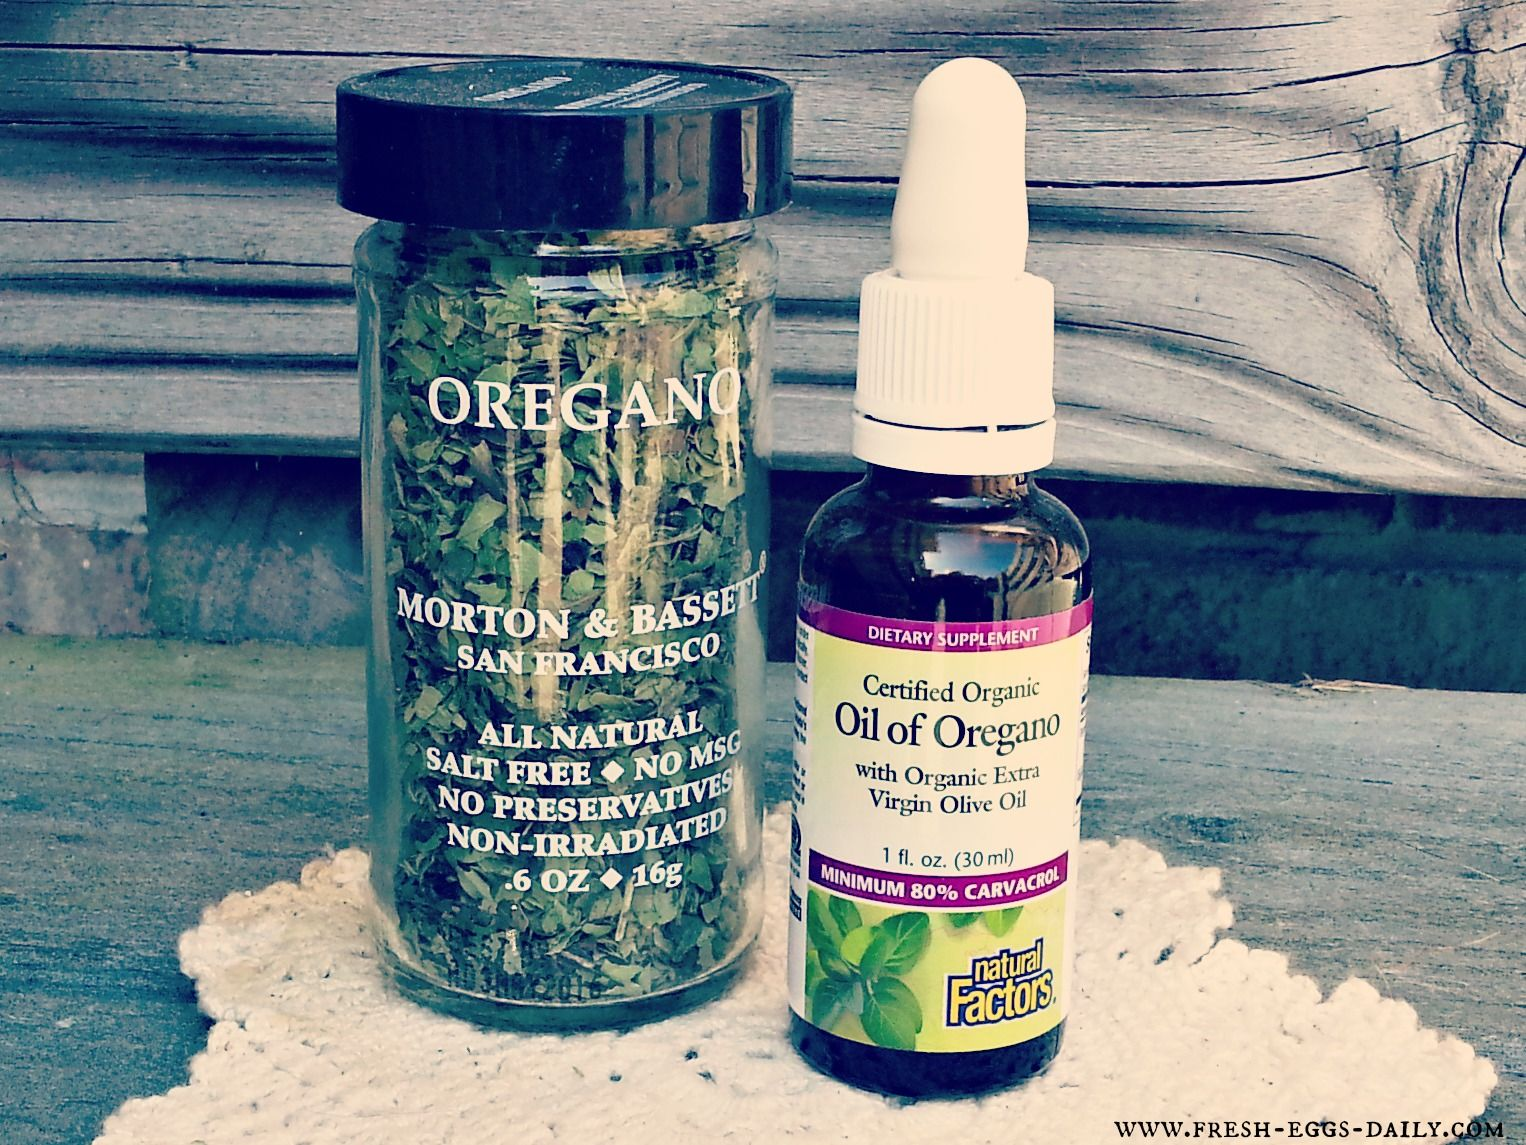 fresh eggs daily oregano as a natural antibiotic for your